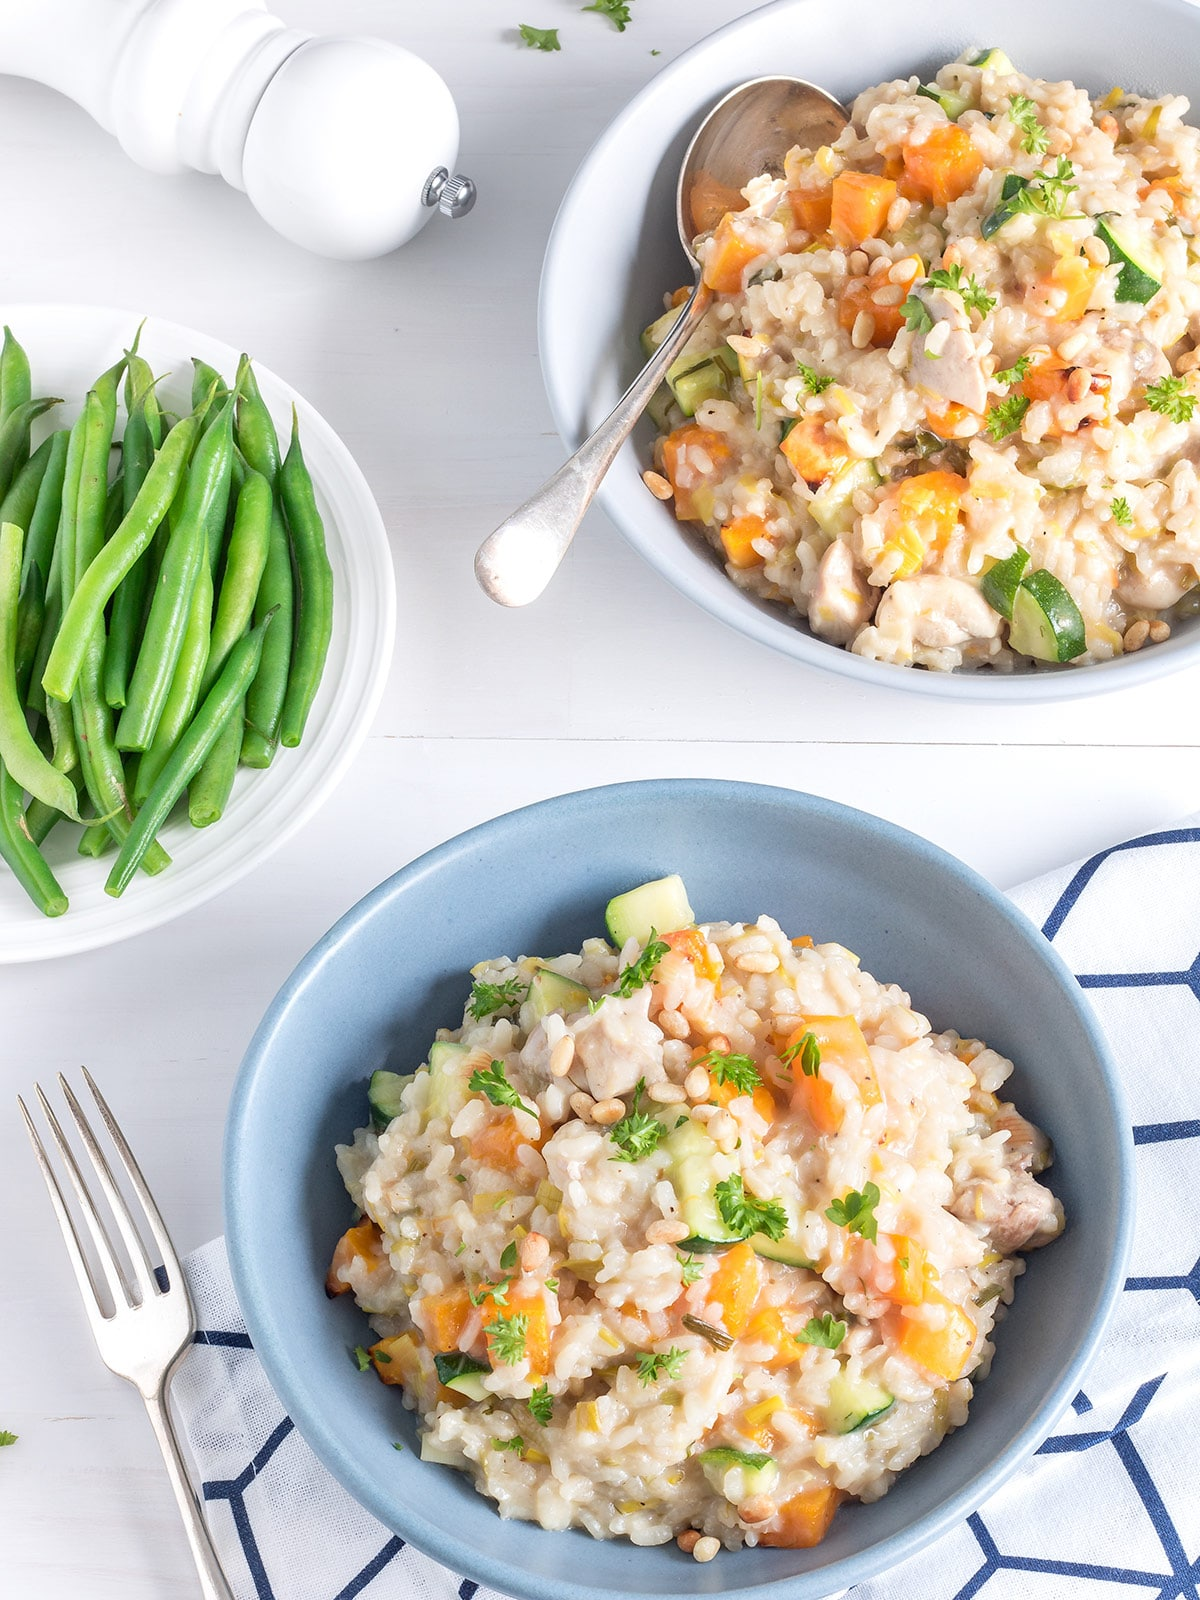 Creamy, dreamy chicken and leek risotto is such a good winter warmer. This version is pretty easy to make too. 